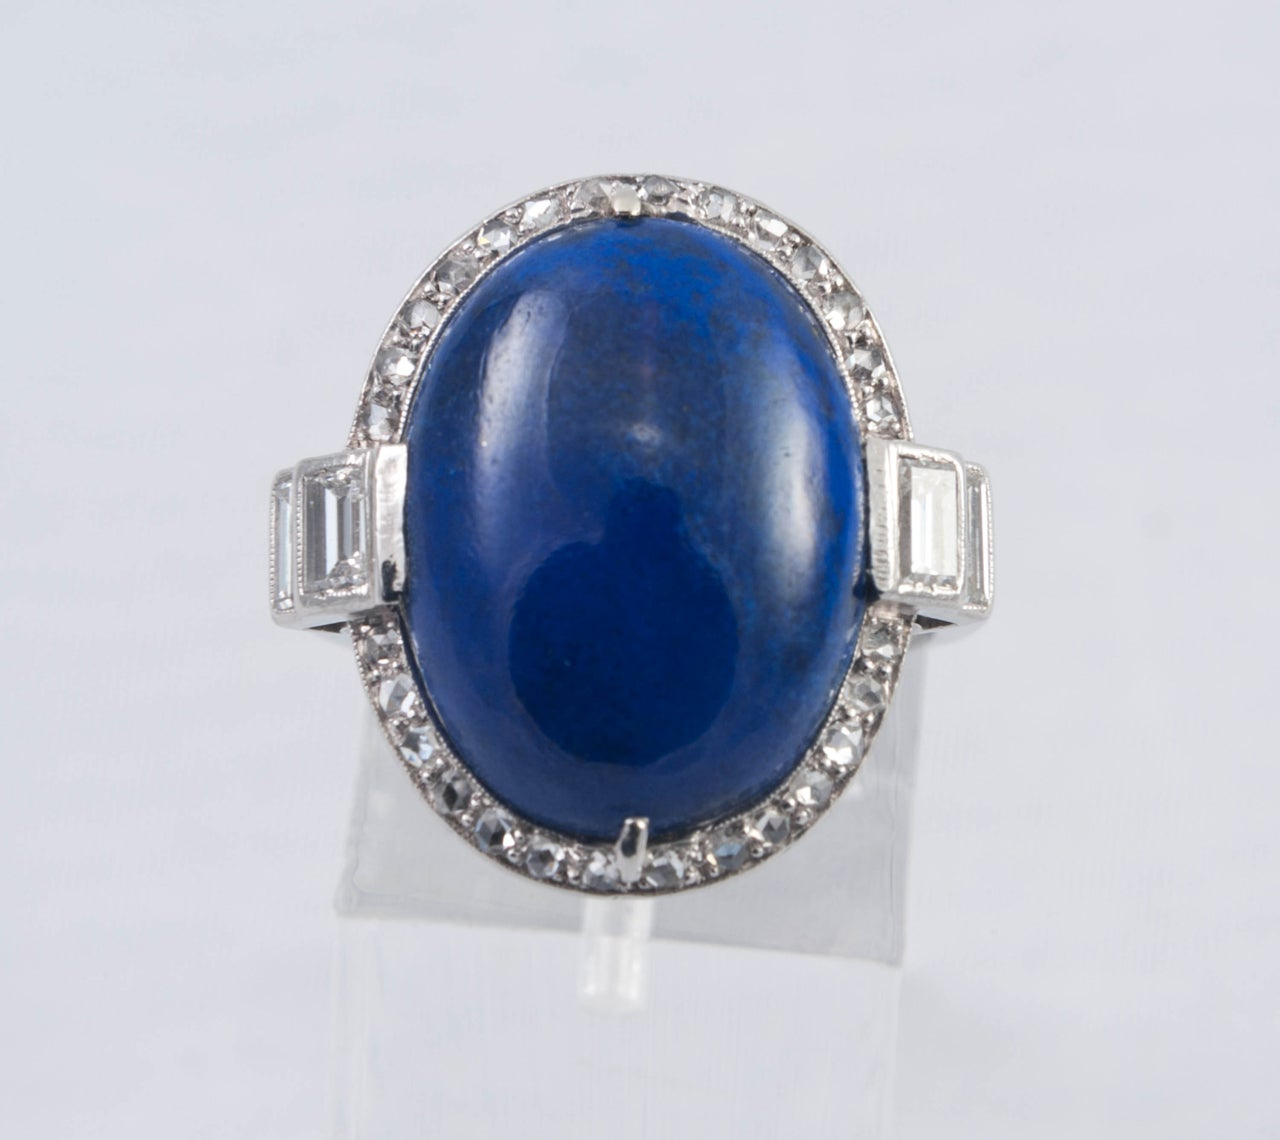 Art Deco Lapis Lazuli Diamond Ring 2